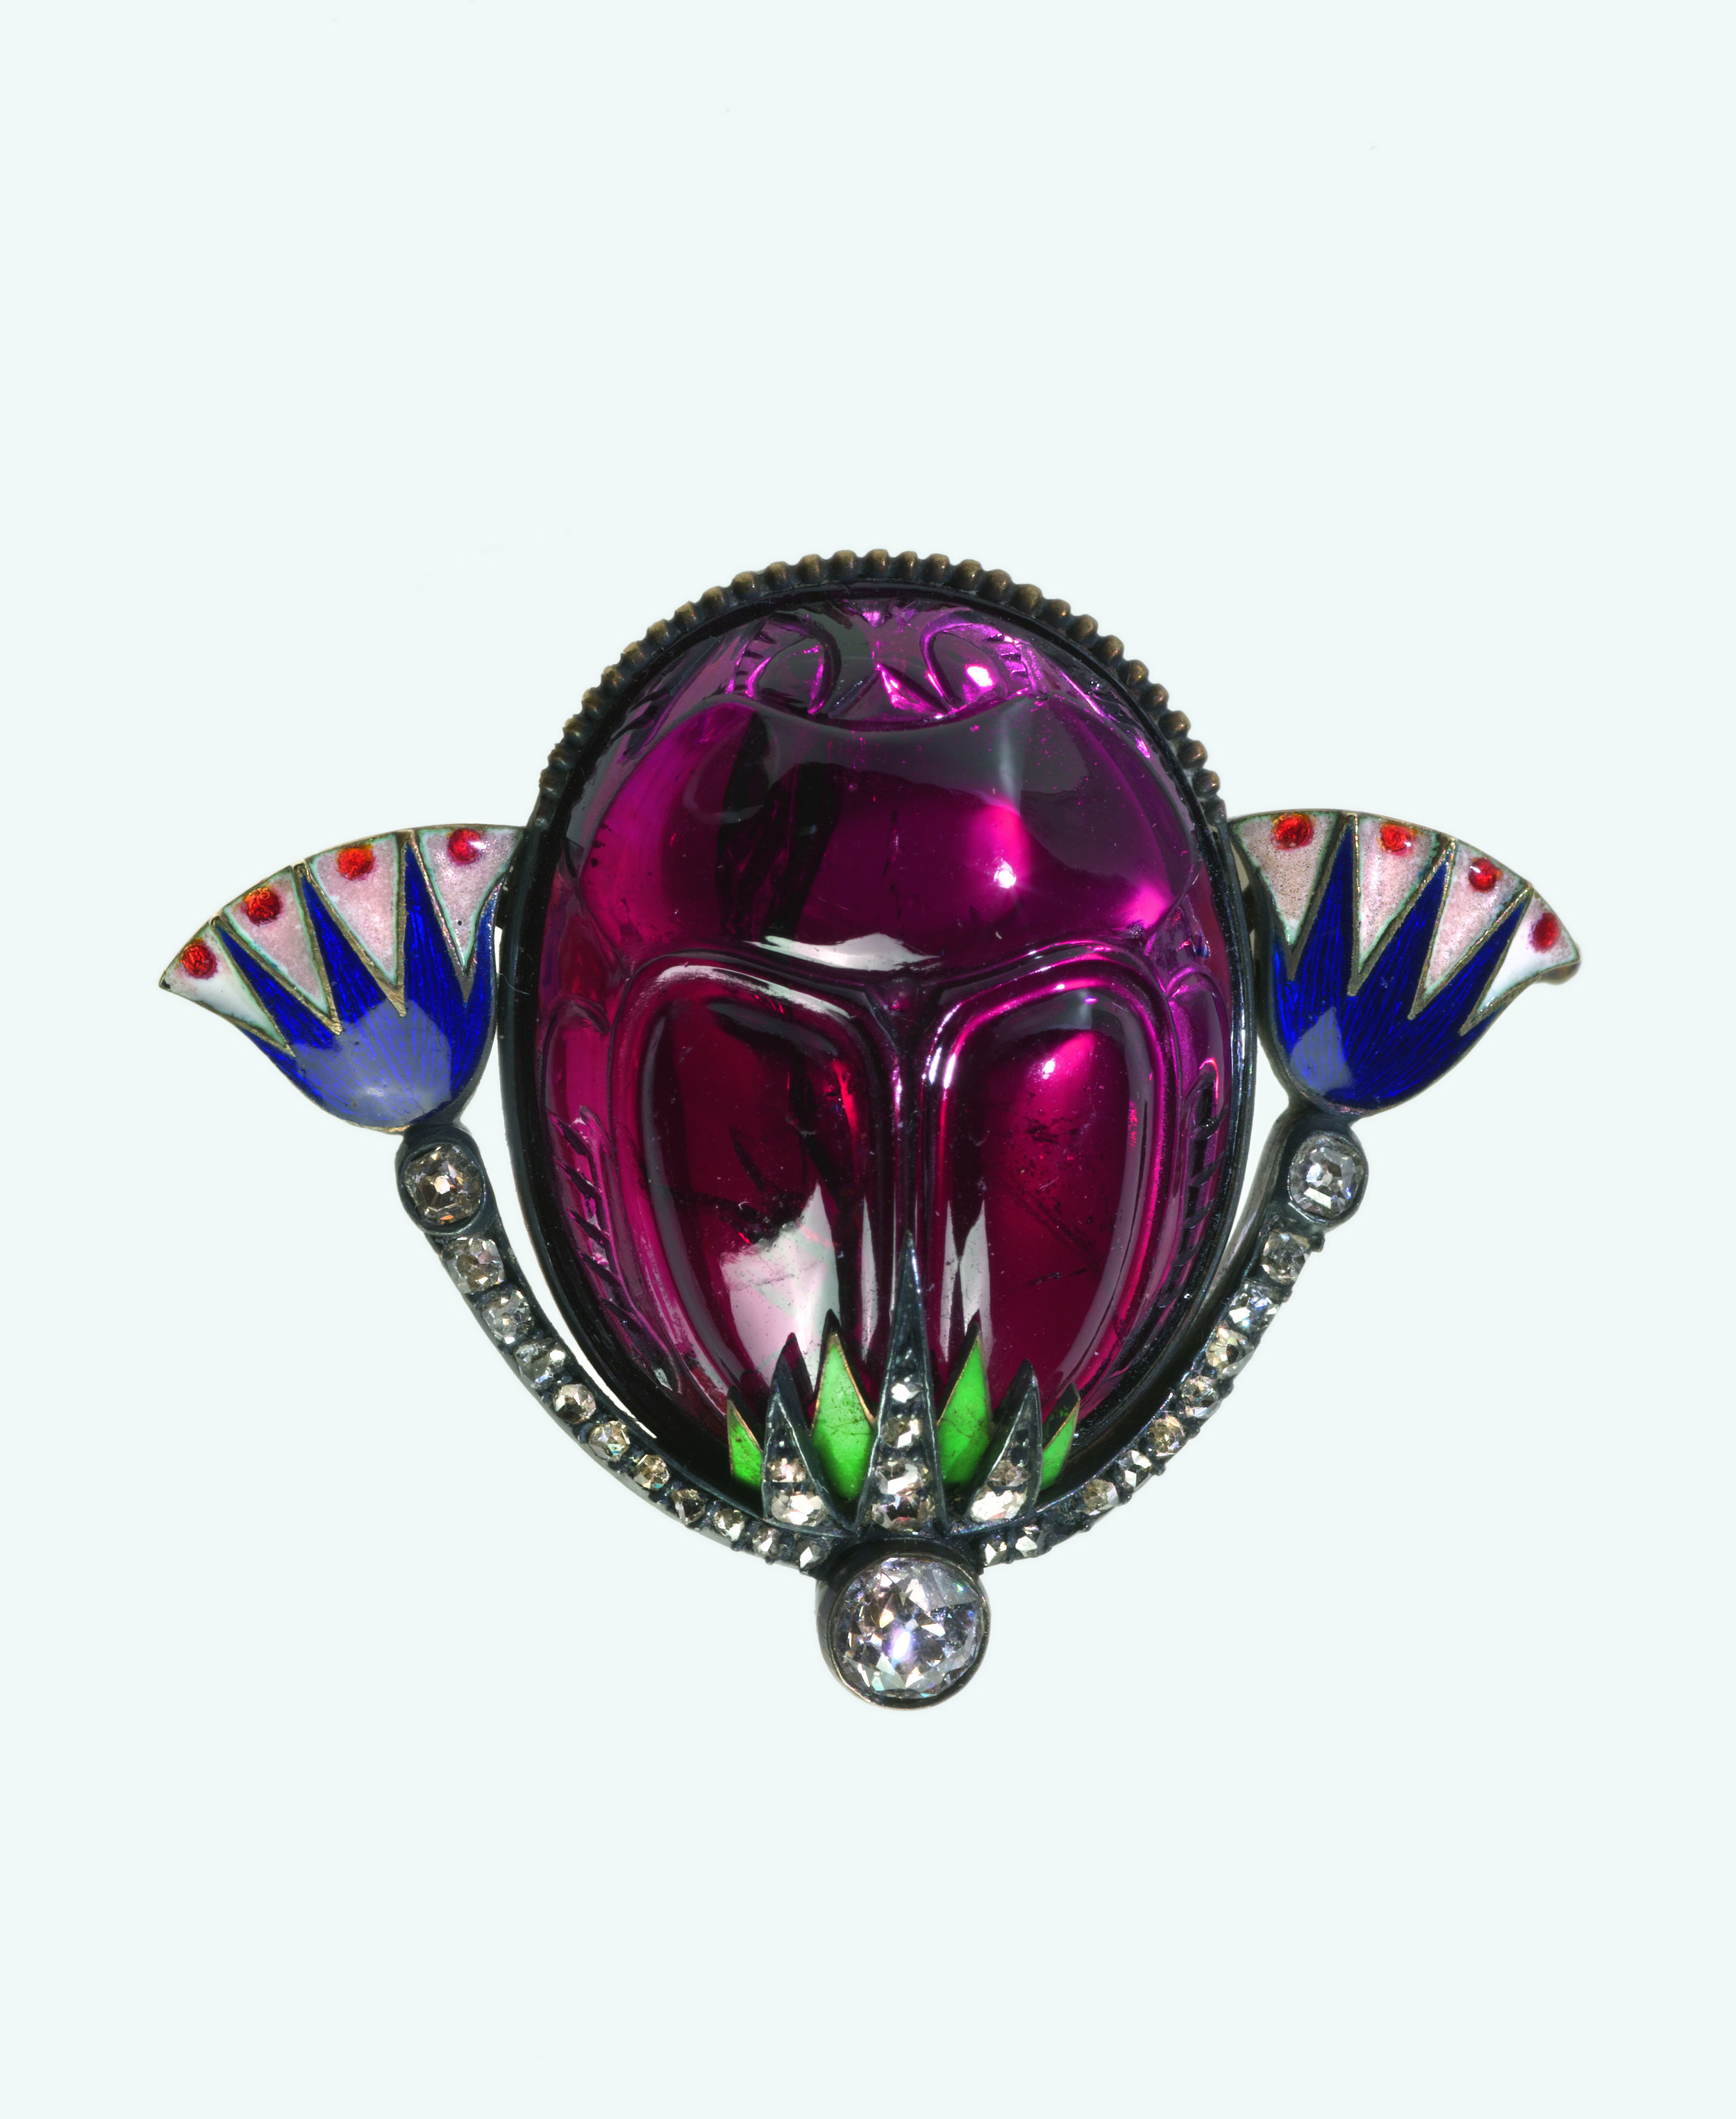 Carl Fabergé (1846–1920), Fabergé workshop, Saint Petersburg, Carl Faberge (work master).   Scarab  Brooch , about 1900. Garnet, gold, diamonds, rubies, enamel, silver. 2.8 x 3.8 x 1.9 cm. Virginia Museum of Fine Arts, Bequest of Lillian Thomas Pratt.  Also featured in   Faberge, Jeweller to the Czars   last year at the Montreal Museum of Fine Arts.  (Photo courtesy The Montreal Museum of Fine Arts)